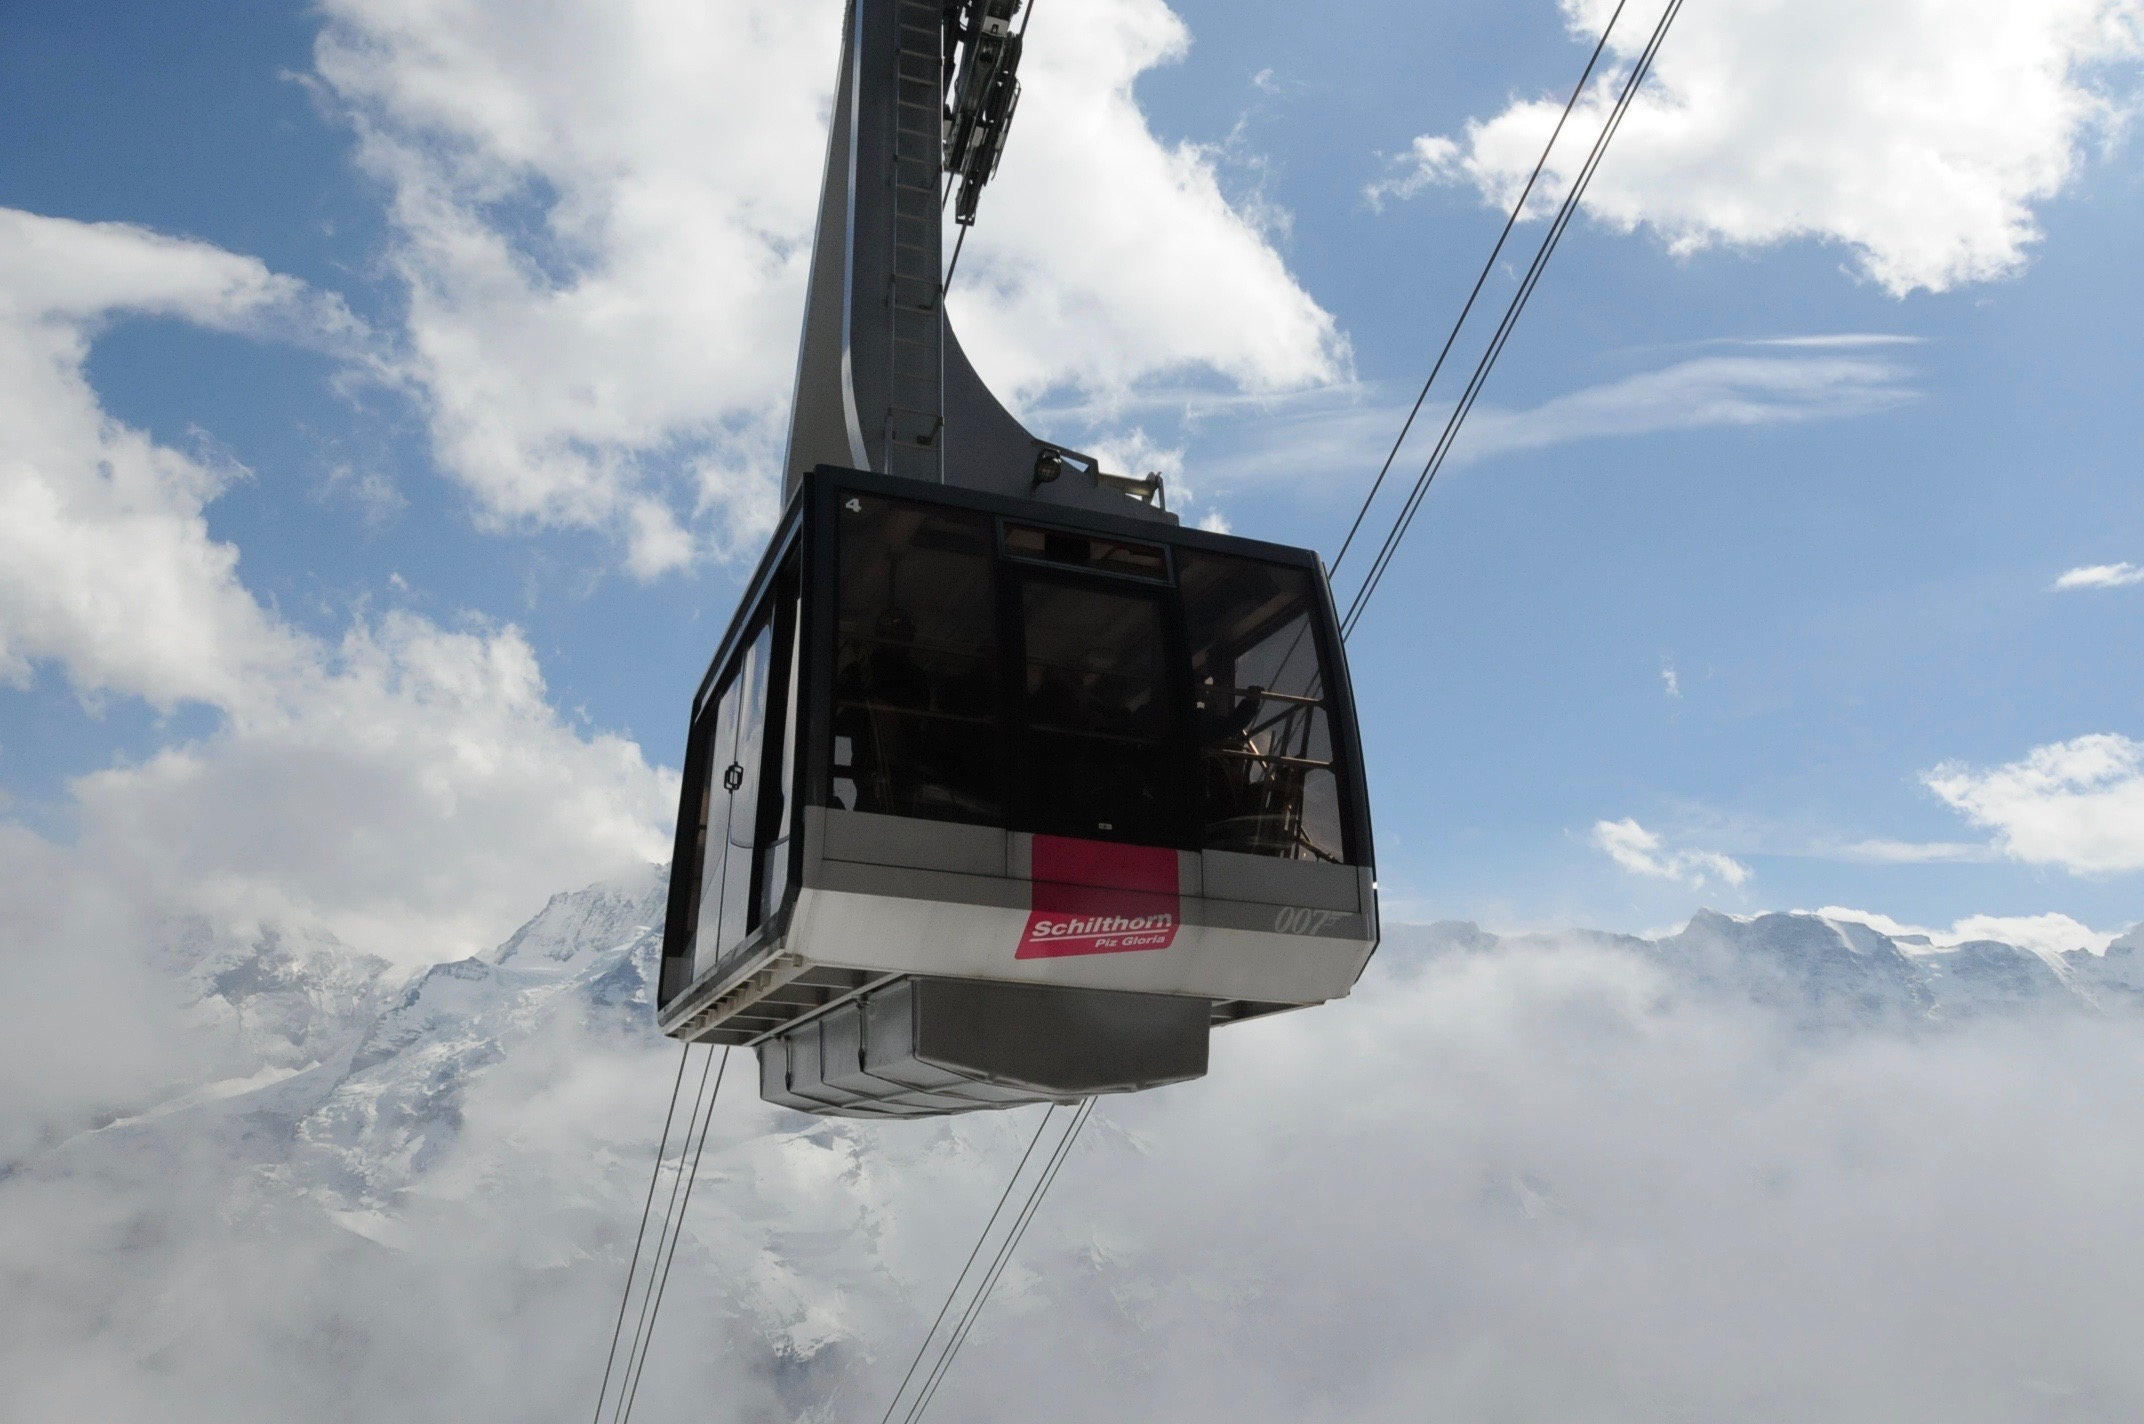 Piz Gloria cable car